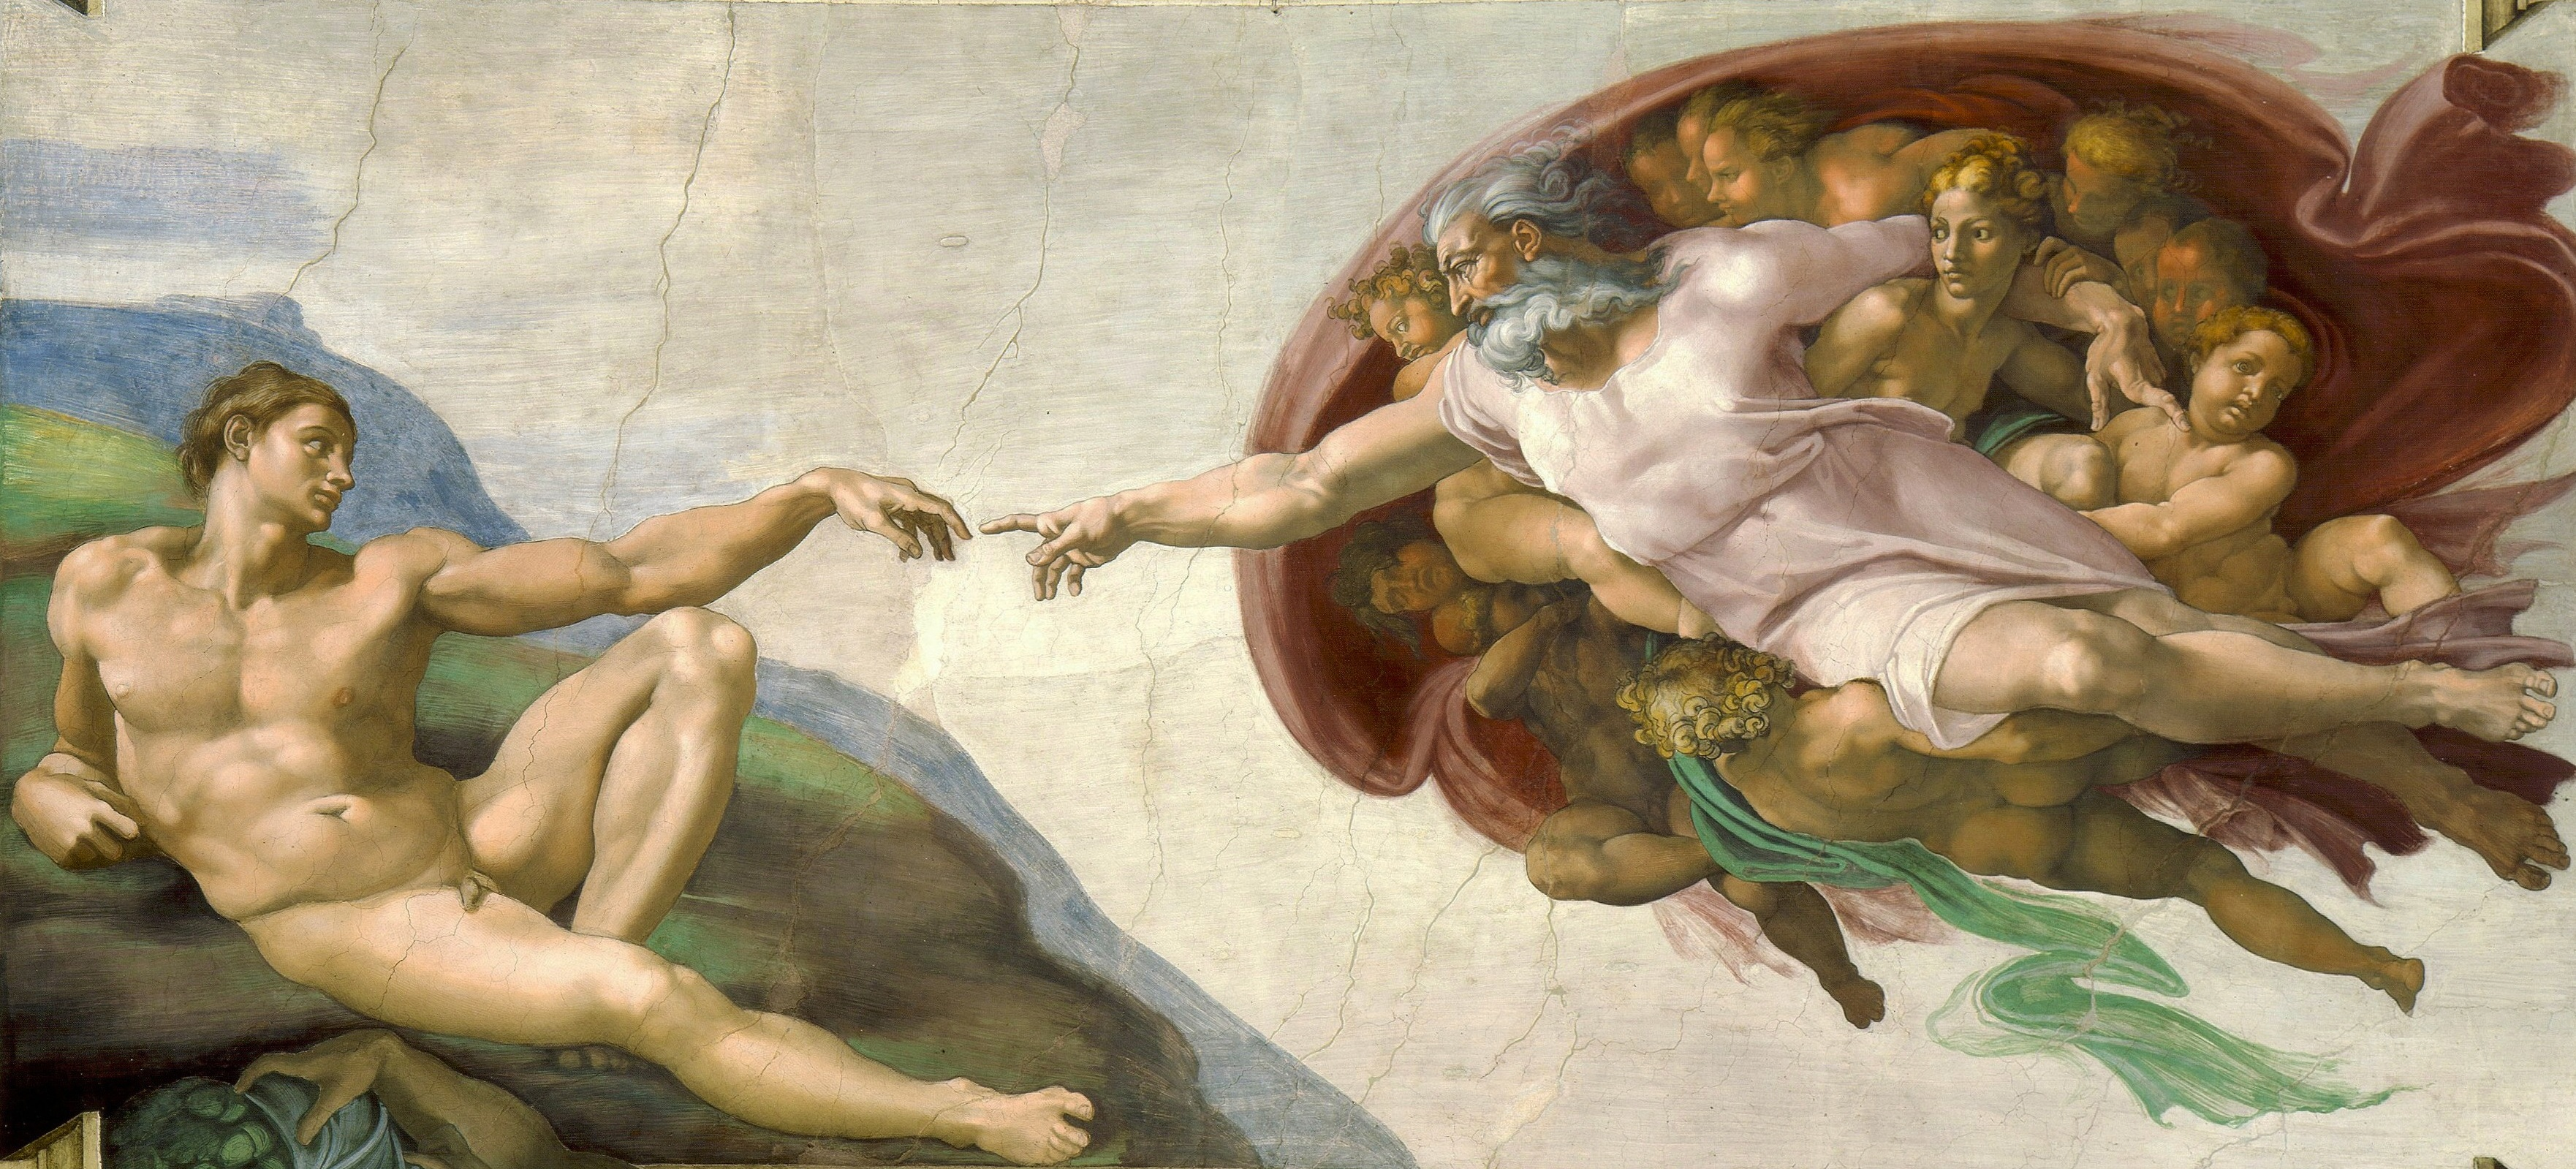 https://upload.wikimedia.org/wikipedia/commons/5/5b/Michelangelo_-_Creation_of_Adam_%28cropped%29.jpg width=1599